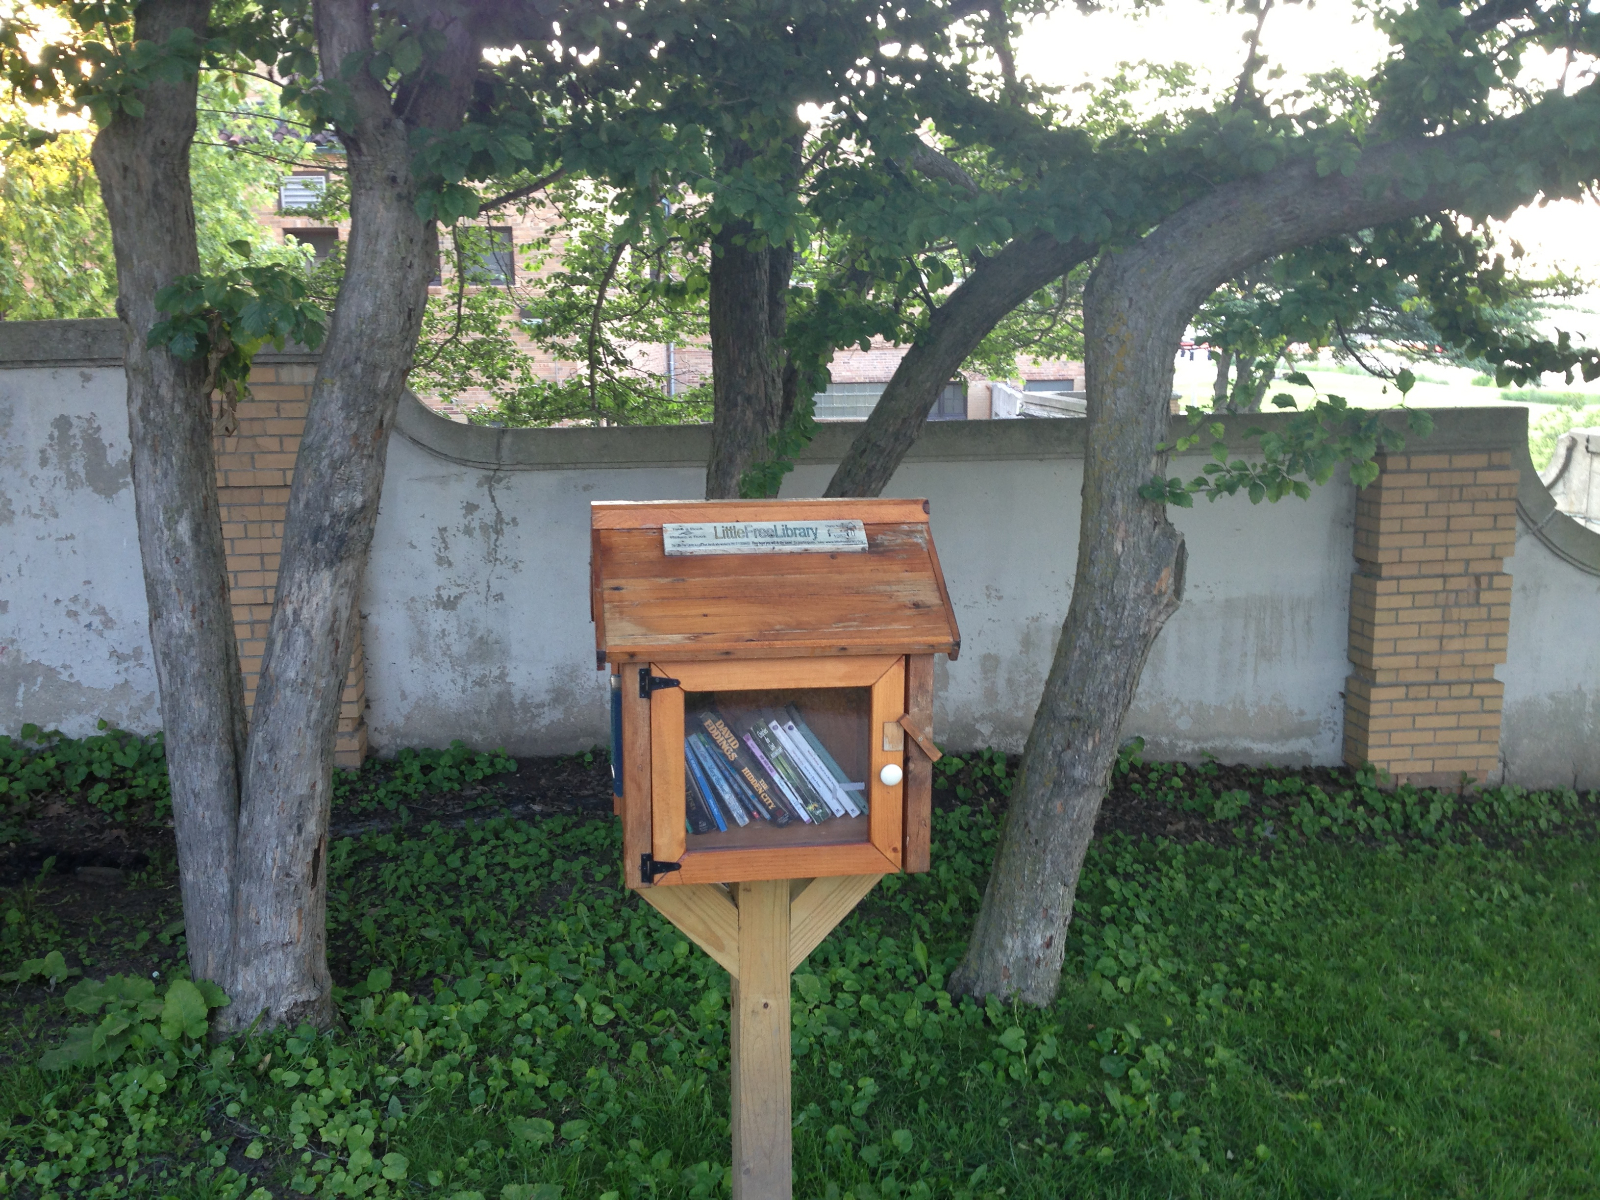 Little Free Library 1082 resides in South Shore Park.